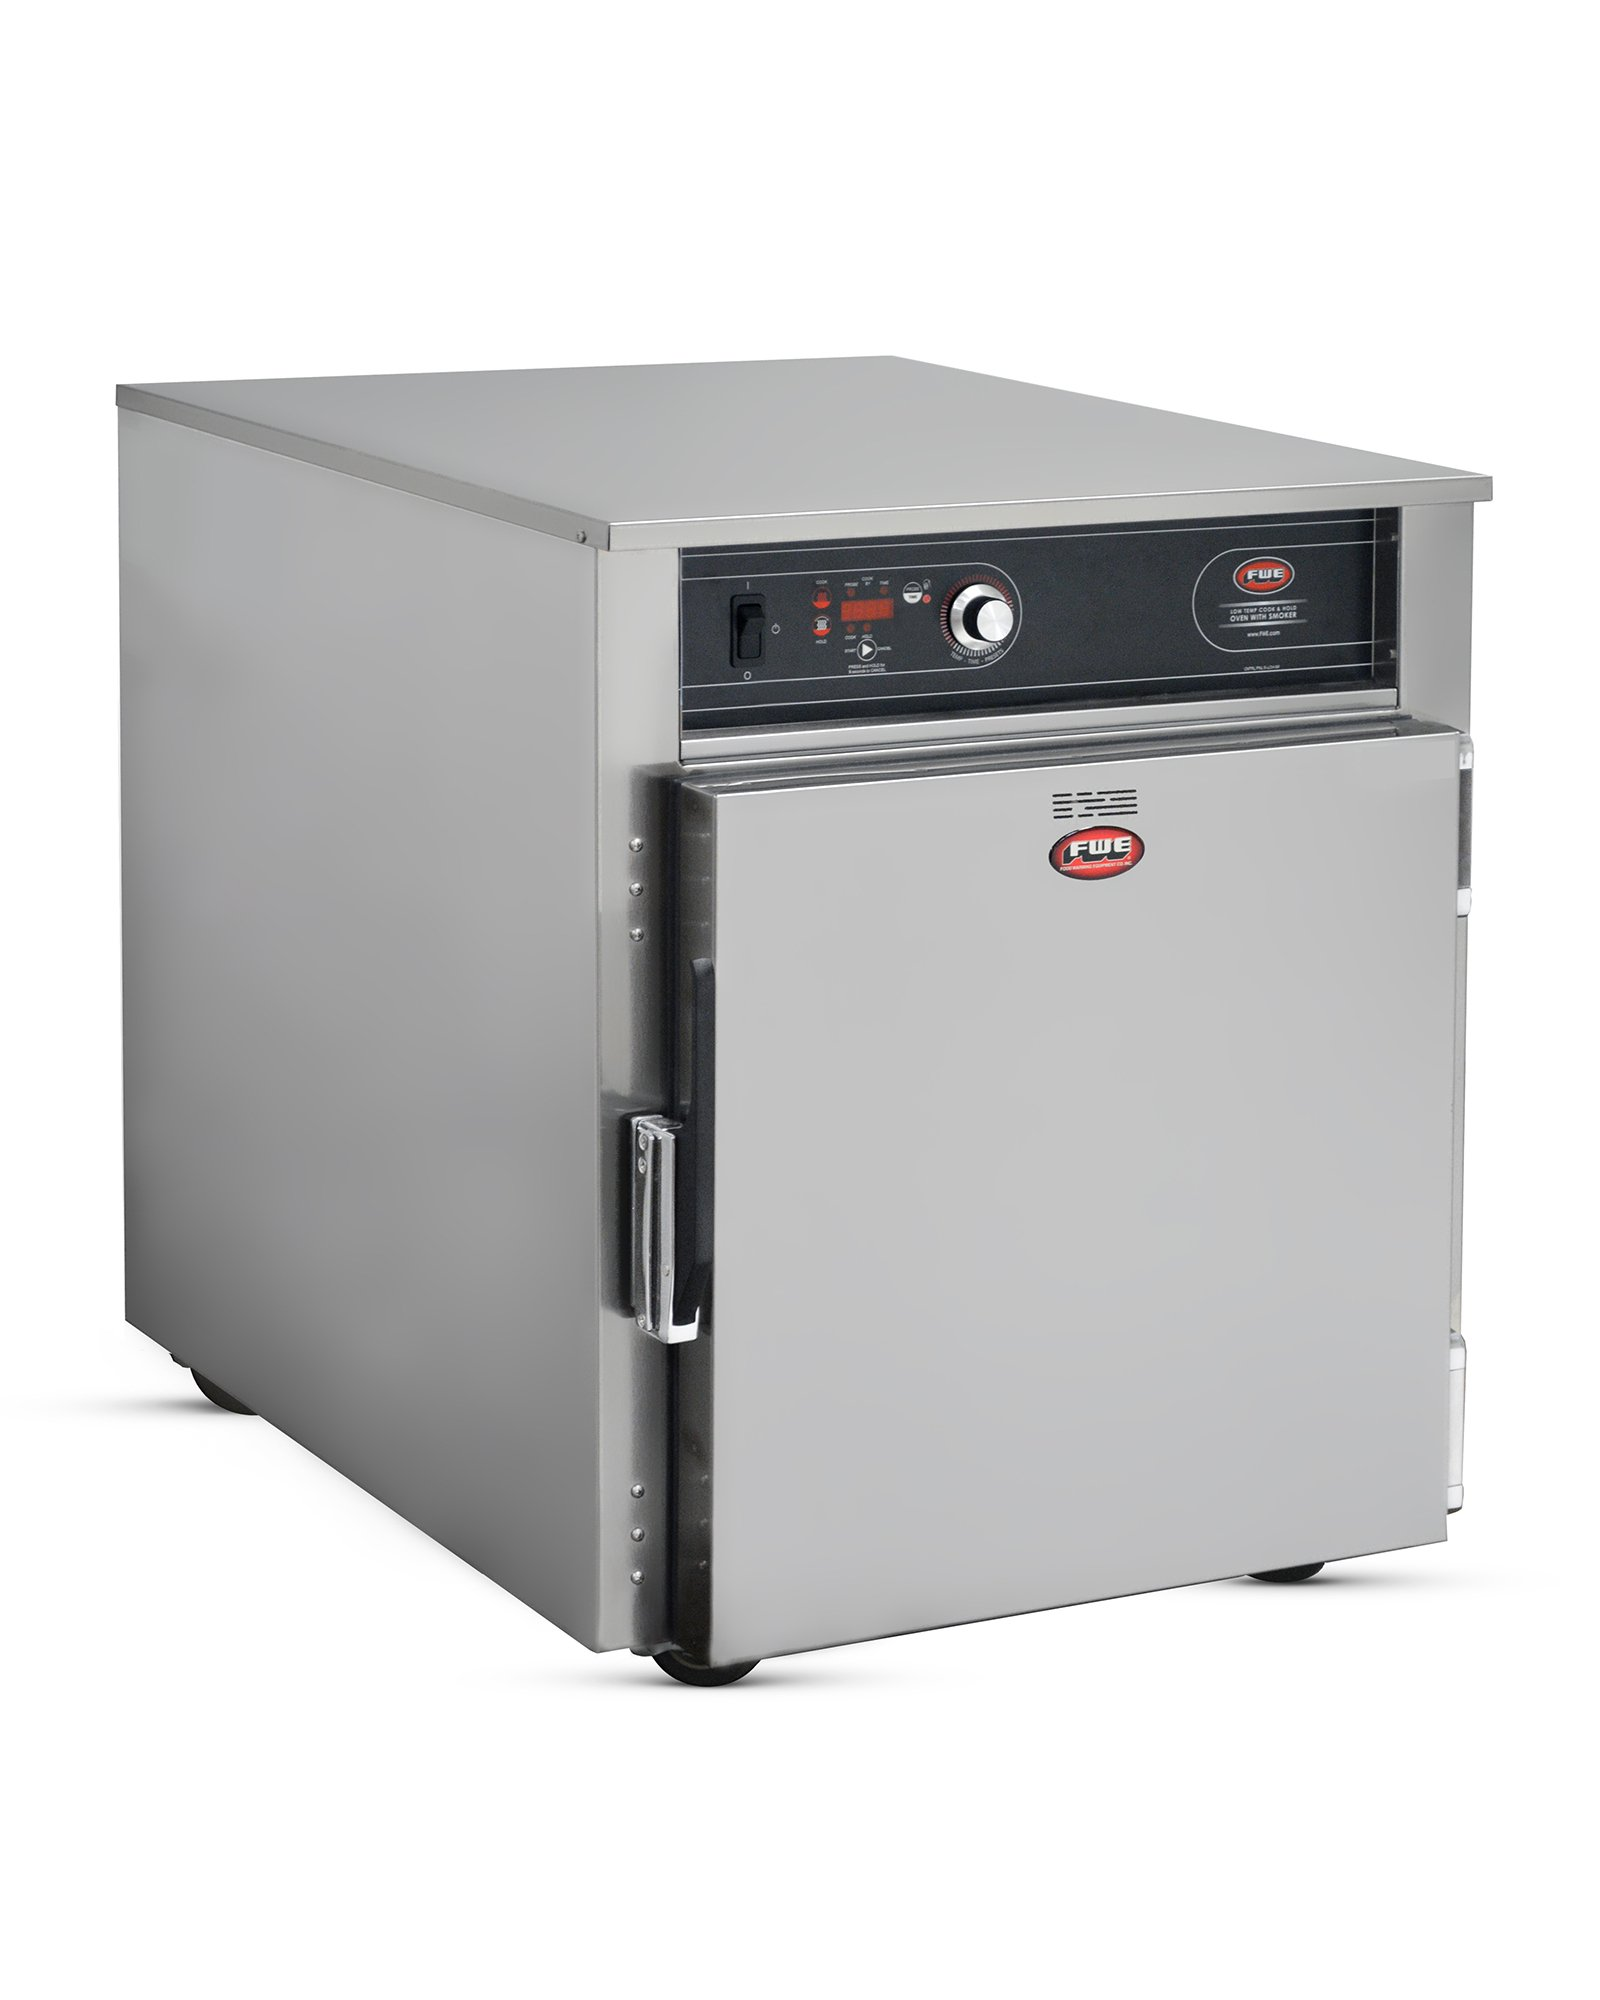 Food Warming Equipment LCH-5-G2 Cook and Hold Oven with Universal Tray Slides, Under Counter